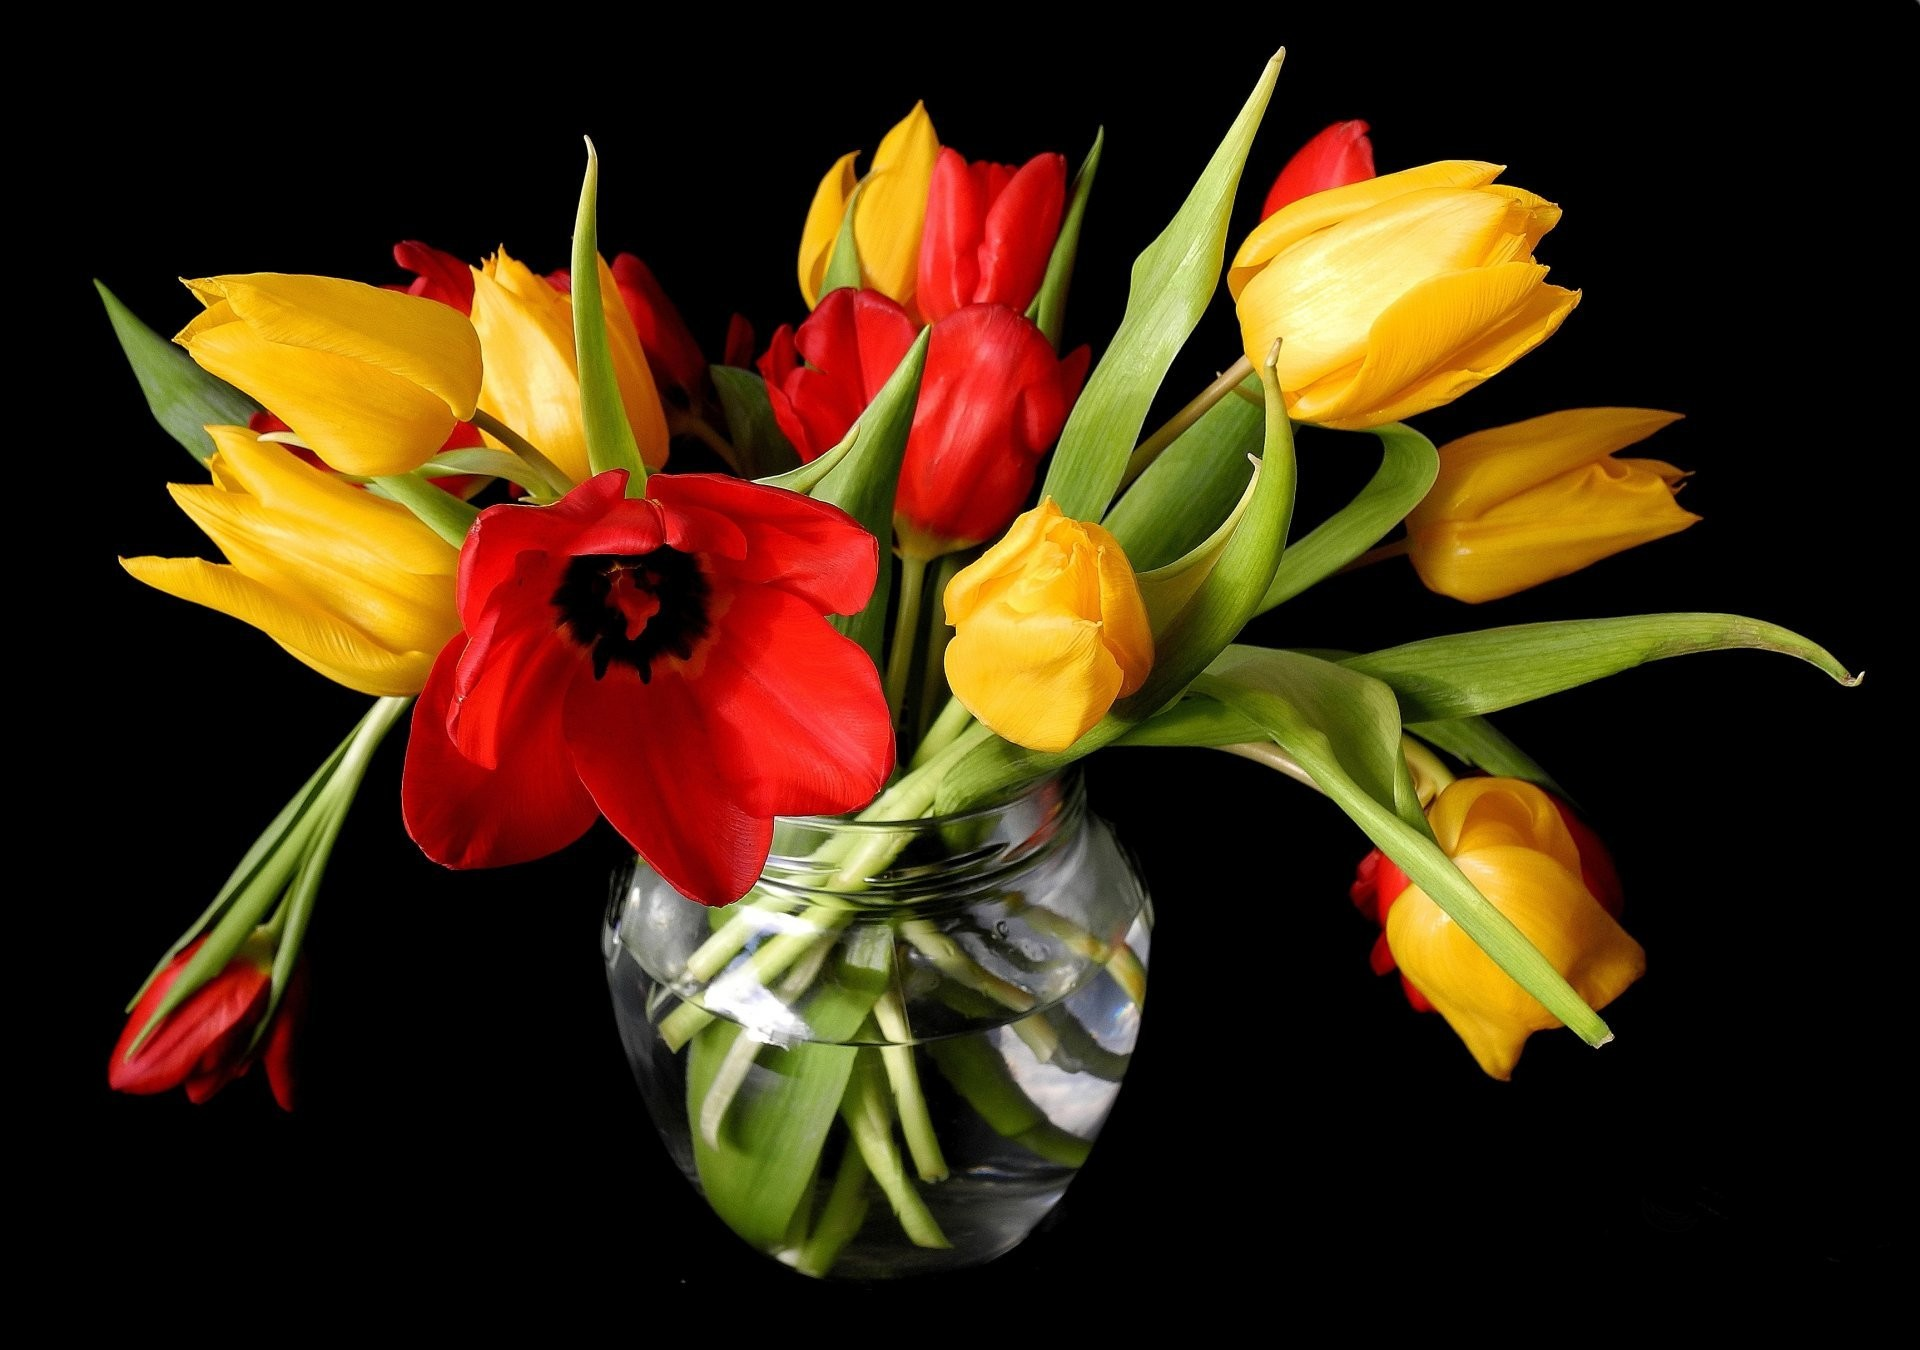 spring tulips yellow red vase flower buds black background